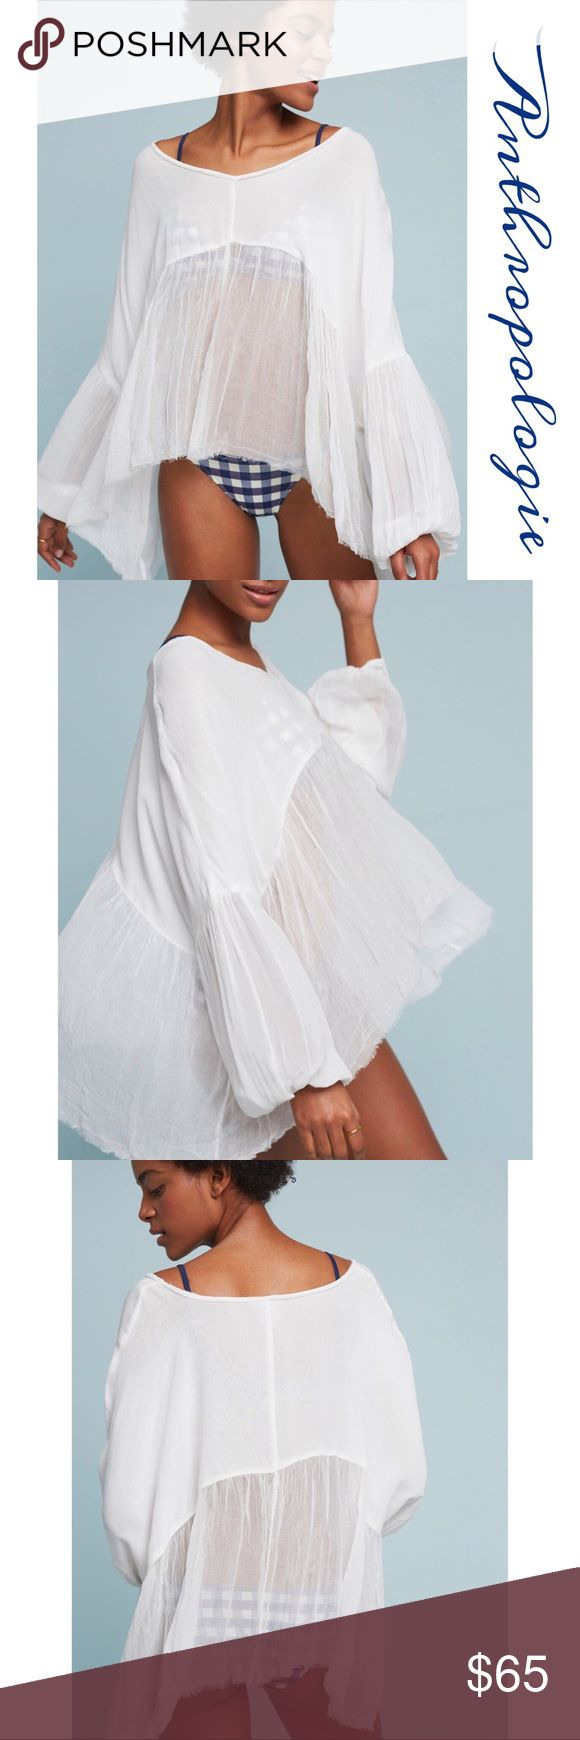 """Anthropologie White Wispy Top Gorgeous soft Lyocell-Viscose top features a V Neck, billowy sheer elastic cuff sleeves, top part is lined, bottom part is in a wispy soft gauzy fabric with raw asymmetrical Hem . Can be worn over a swimsuit it wear a Cami under if you want mor coverage..approx Measurements Length 24"""" shortest 30"""" longest, runs oversized CS will fit up to a med Anthropologie Tops"""